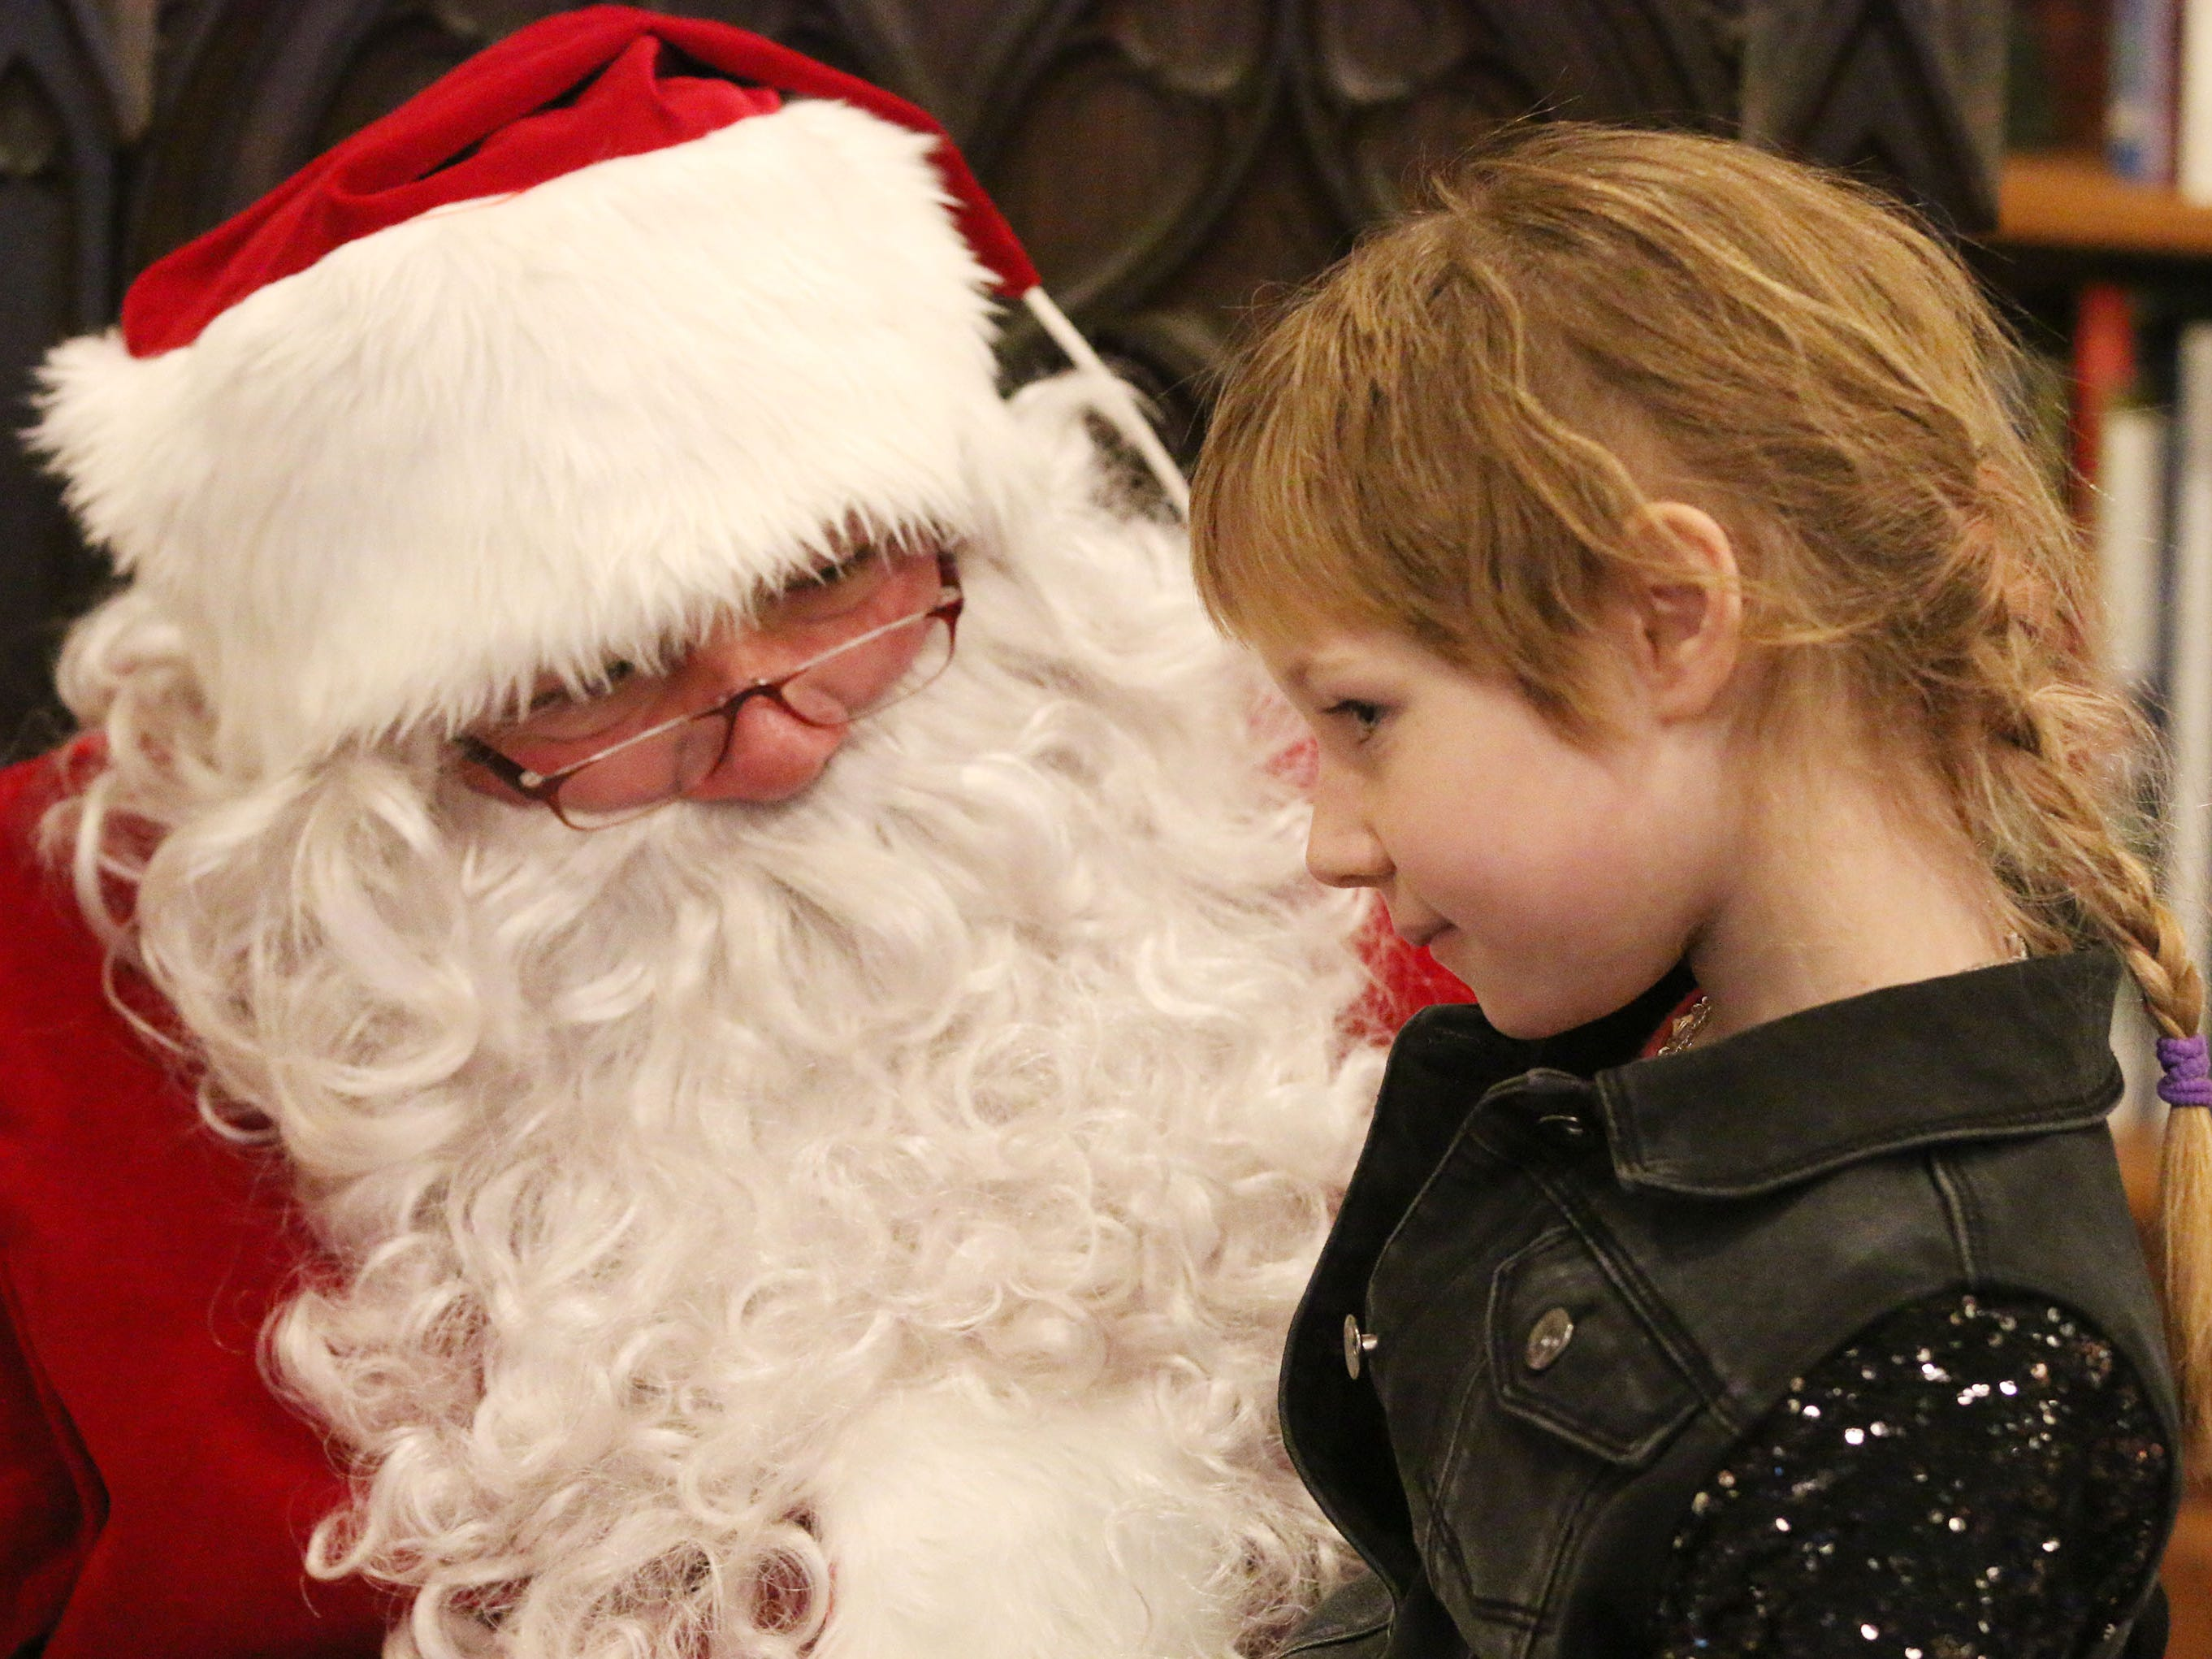 Ella Depies, 7, of Howards Grove thinks about her Christmas list while listening to Santa during Cookies with Santa at Zimmer Westview Funeral and Cremation Care Center Saturday, December 1, 2018, in Howards Grove, Wis.  The firm plans to have Santa at Ballhorn Chapels on December 8, 2018.